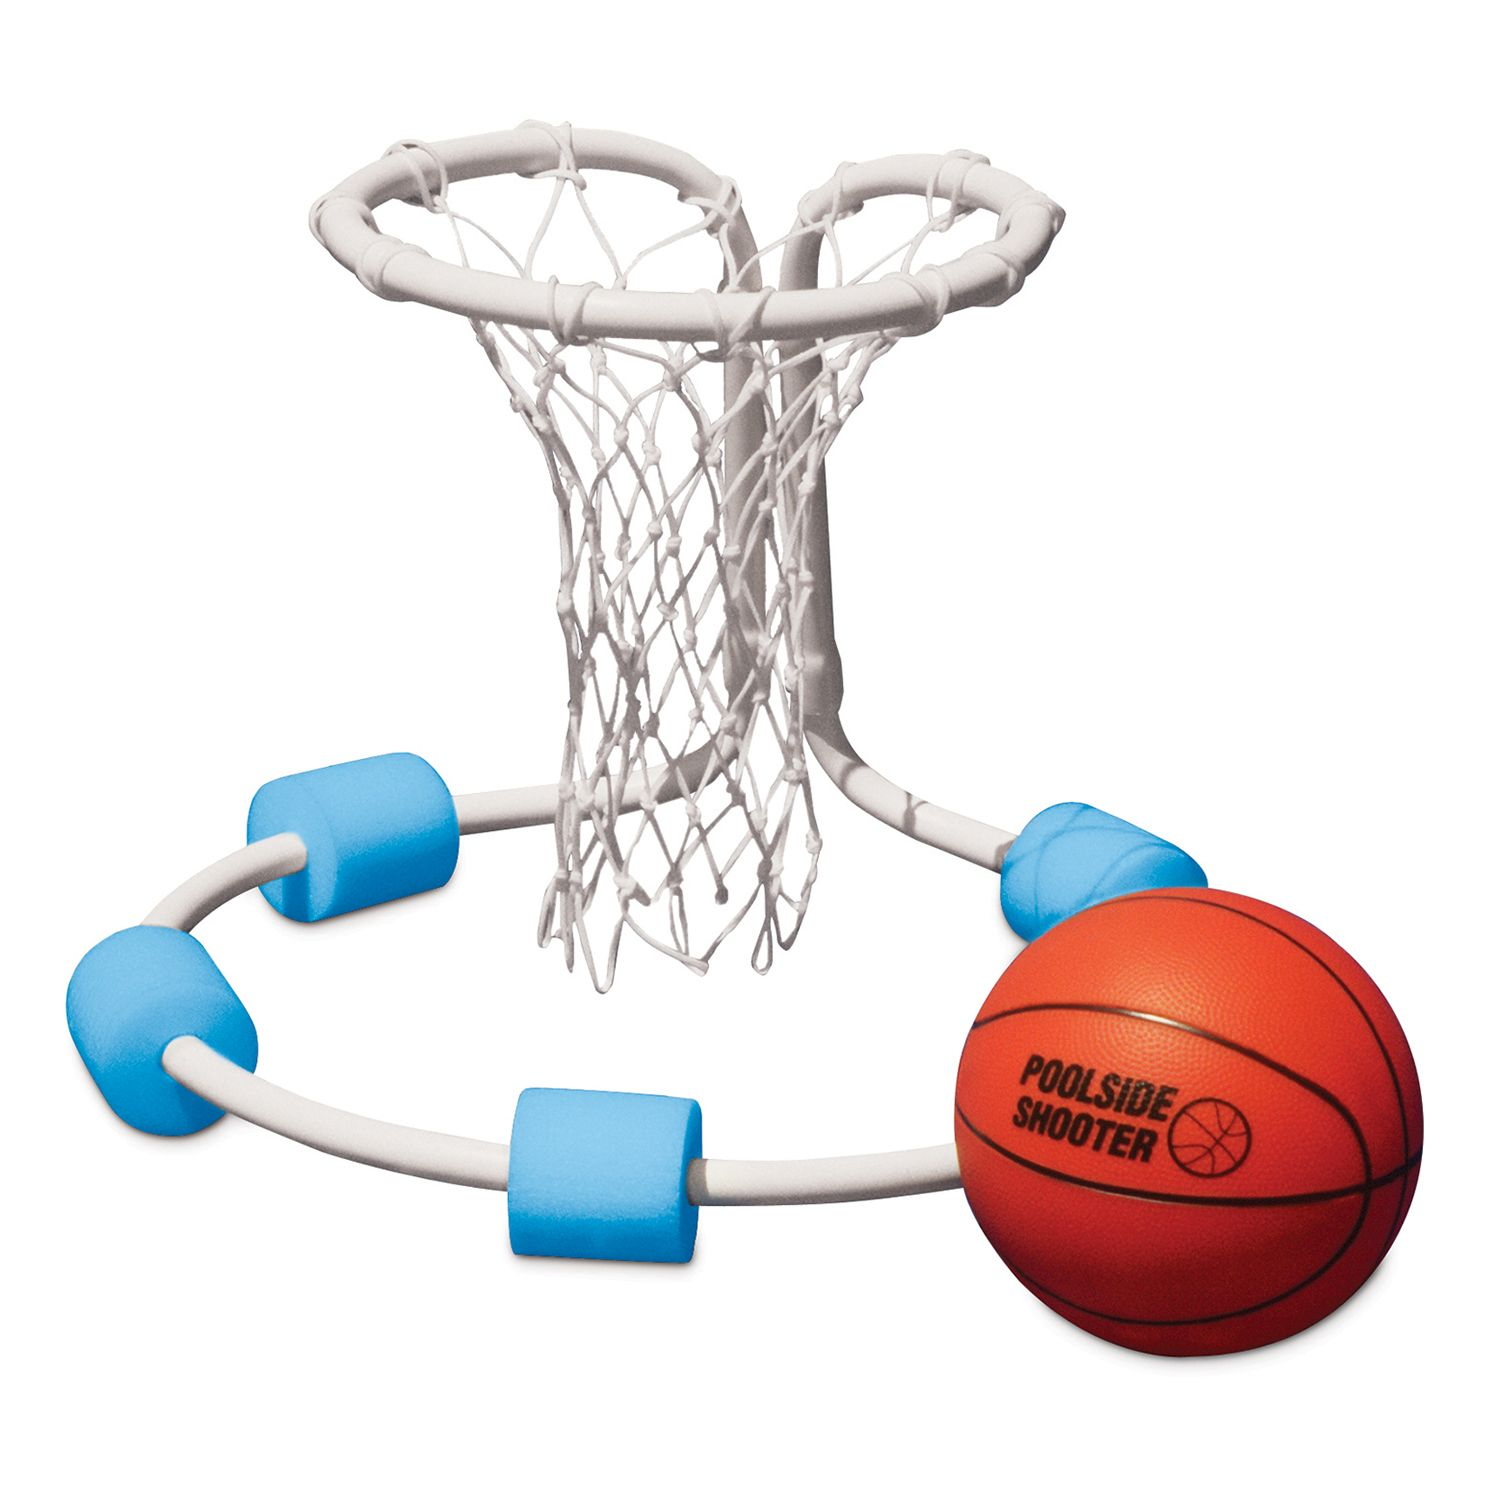 Game on closeouts sporting goods - Game On Closeouts Sporting Goods 50